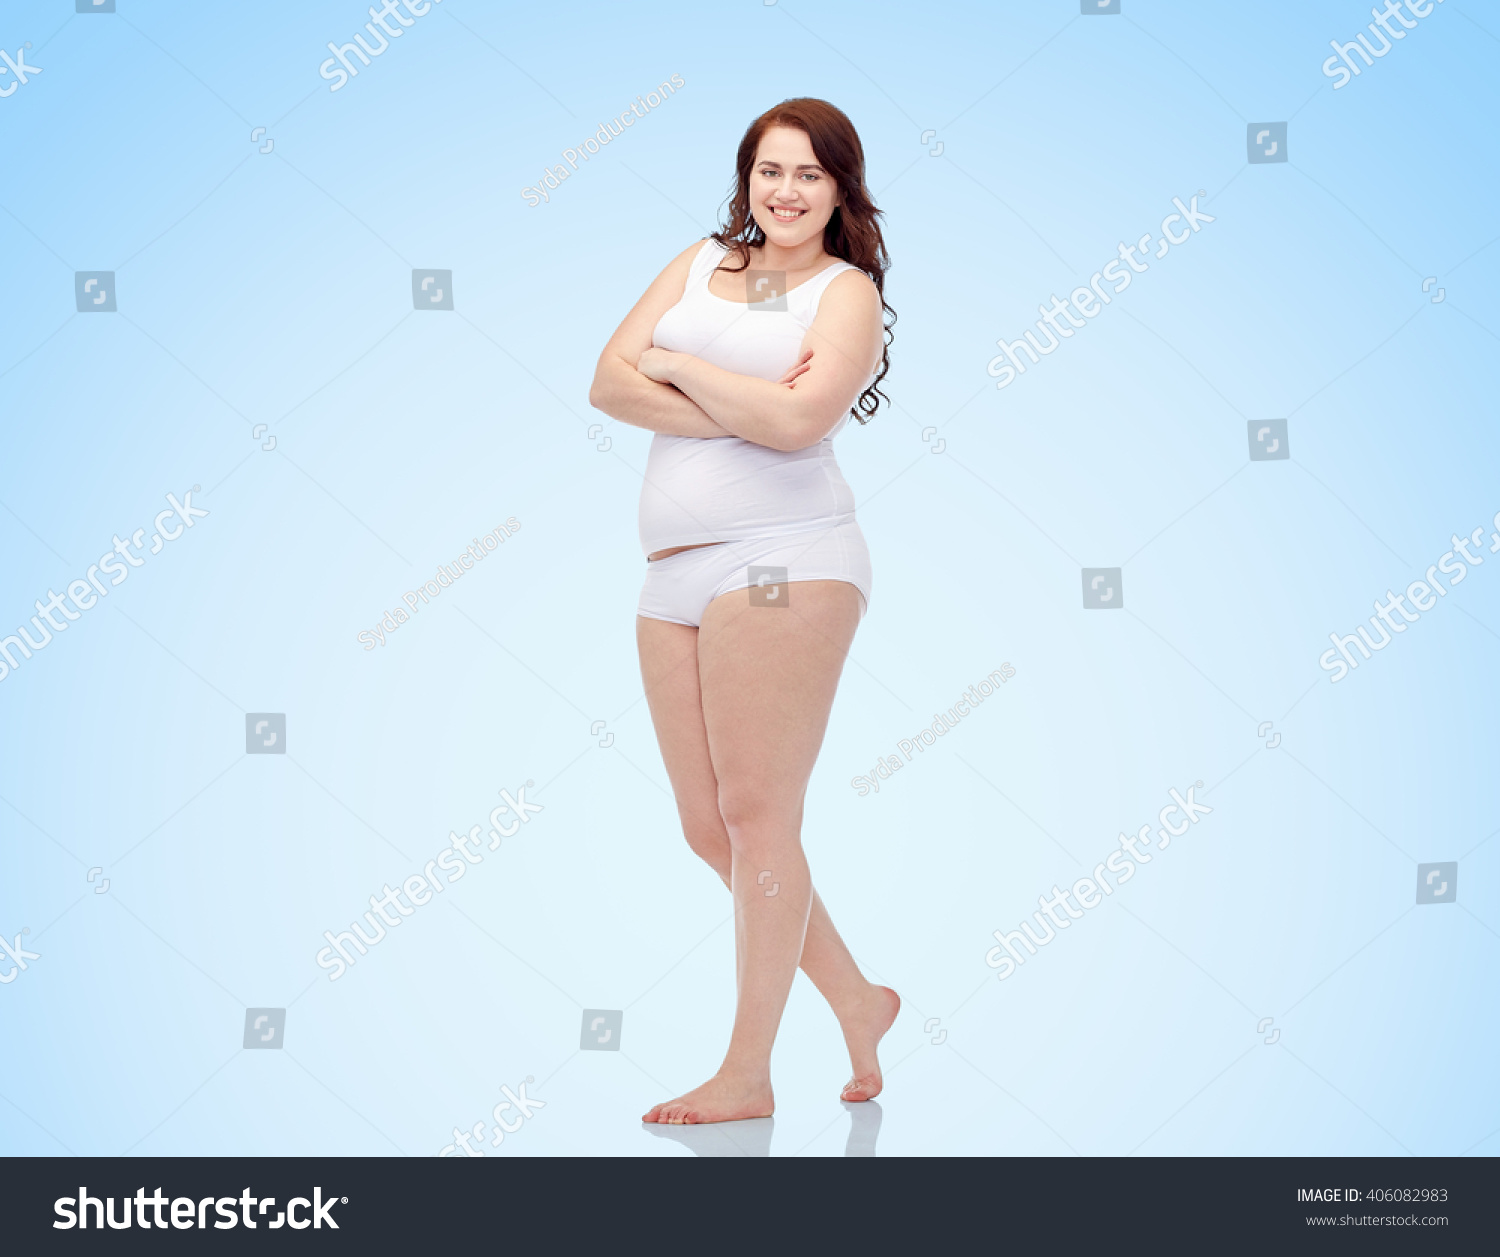 a7656bfe886 plus size and people concept - happy plus size woman in underwear over blue  background